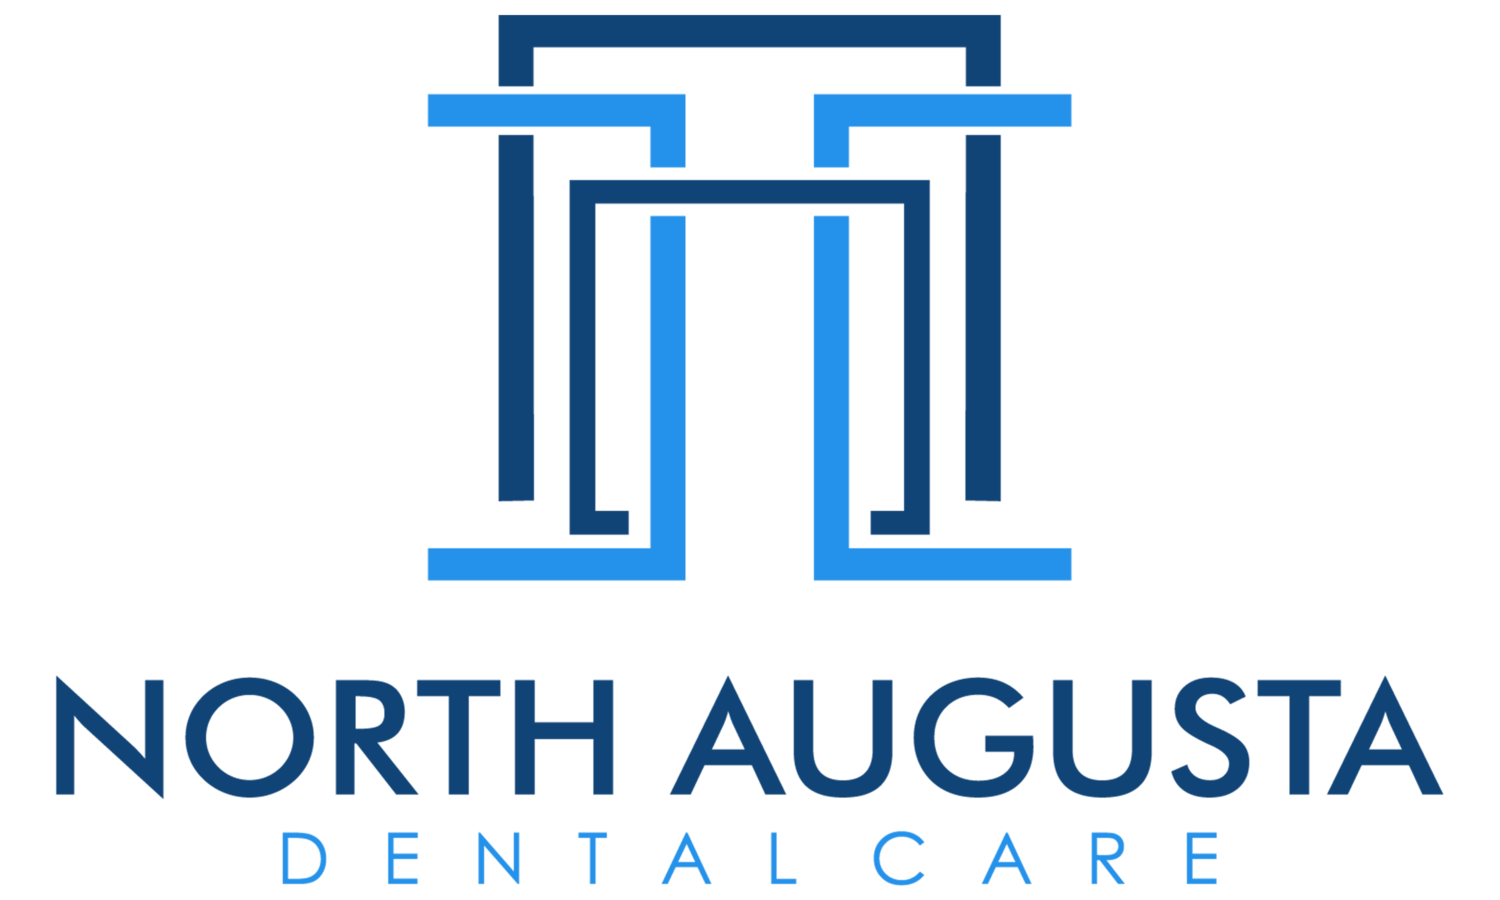 North Augusta Dental Care